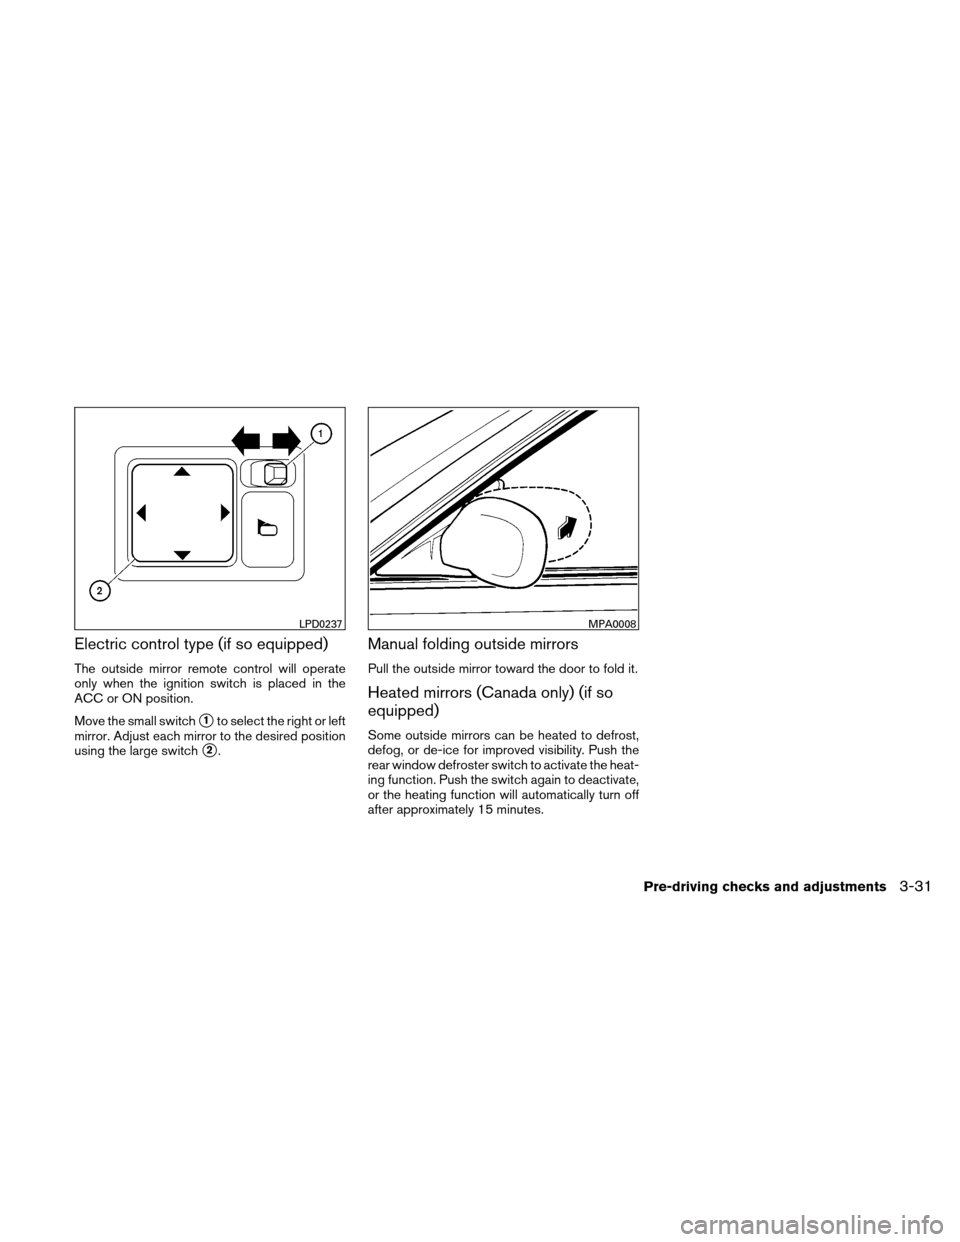 NISSAN VERSA HATCHBACK 2011 1.G Owners Manual, Page 146